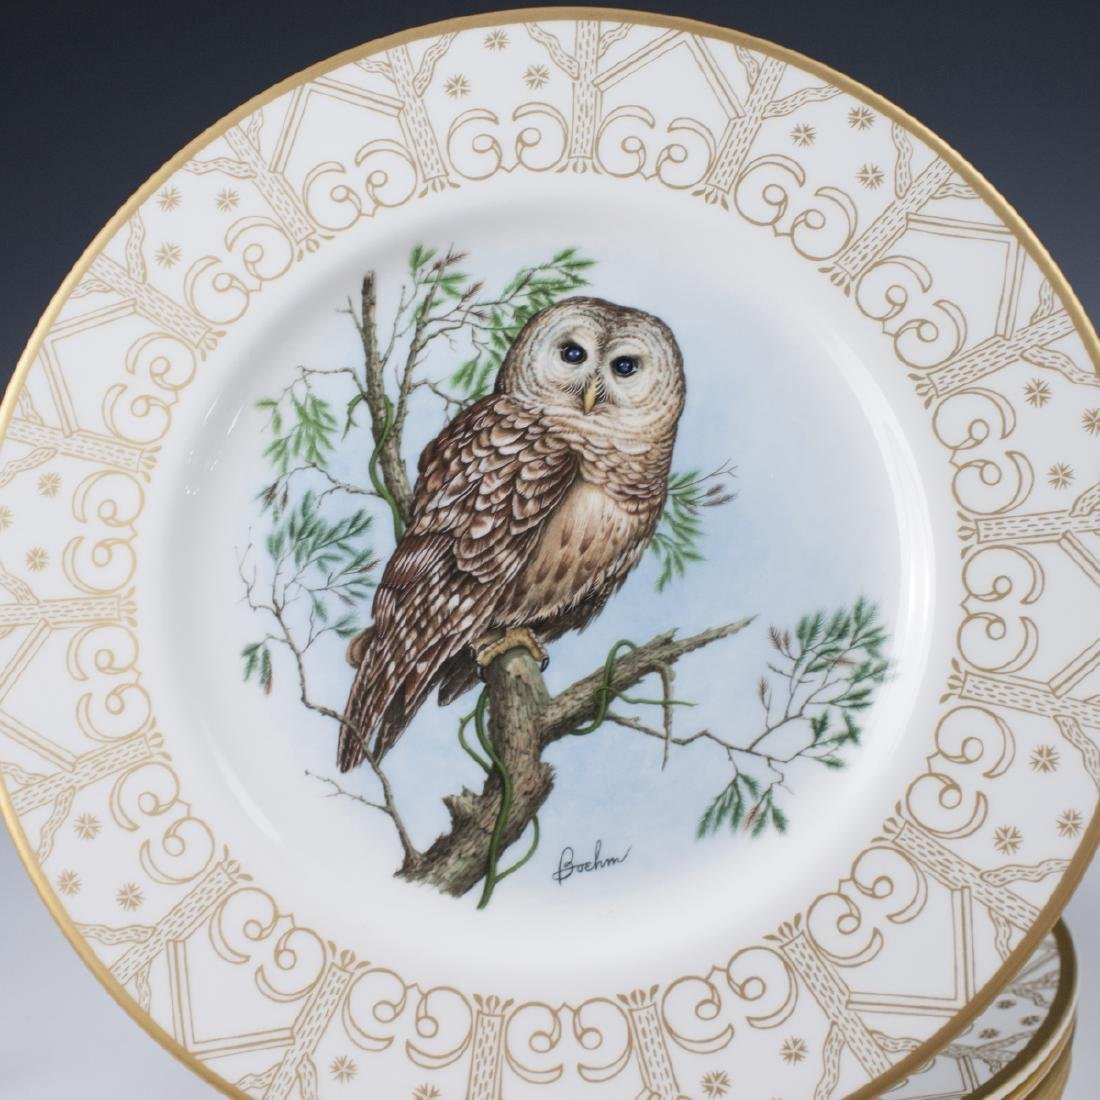 Edward Marshall Boehm Owl Plate Collection - 5